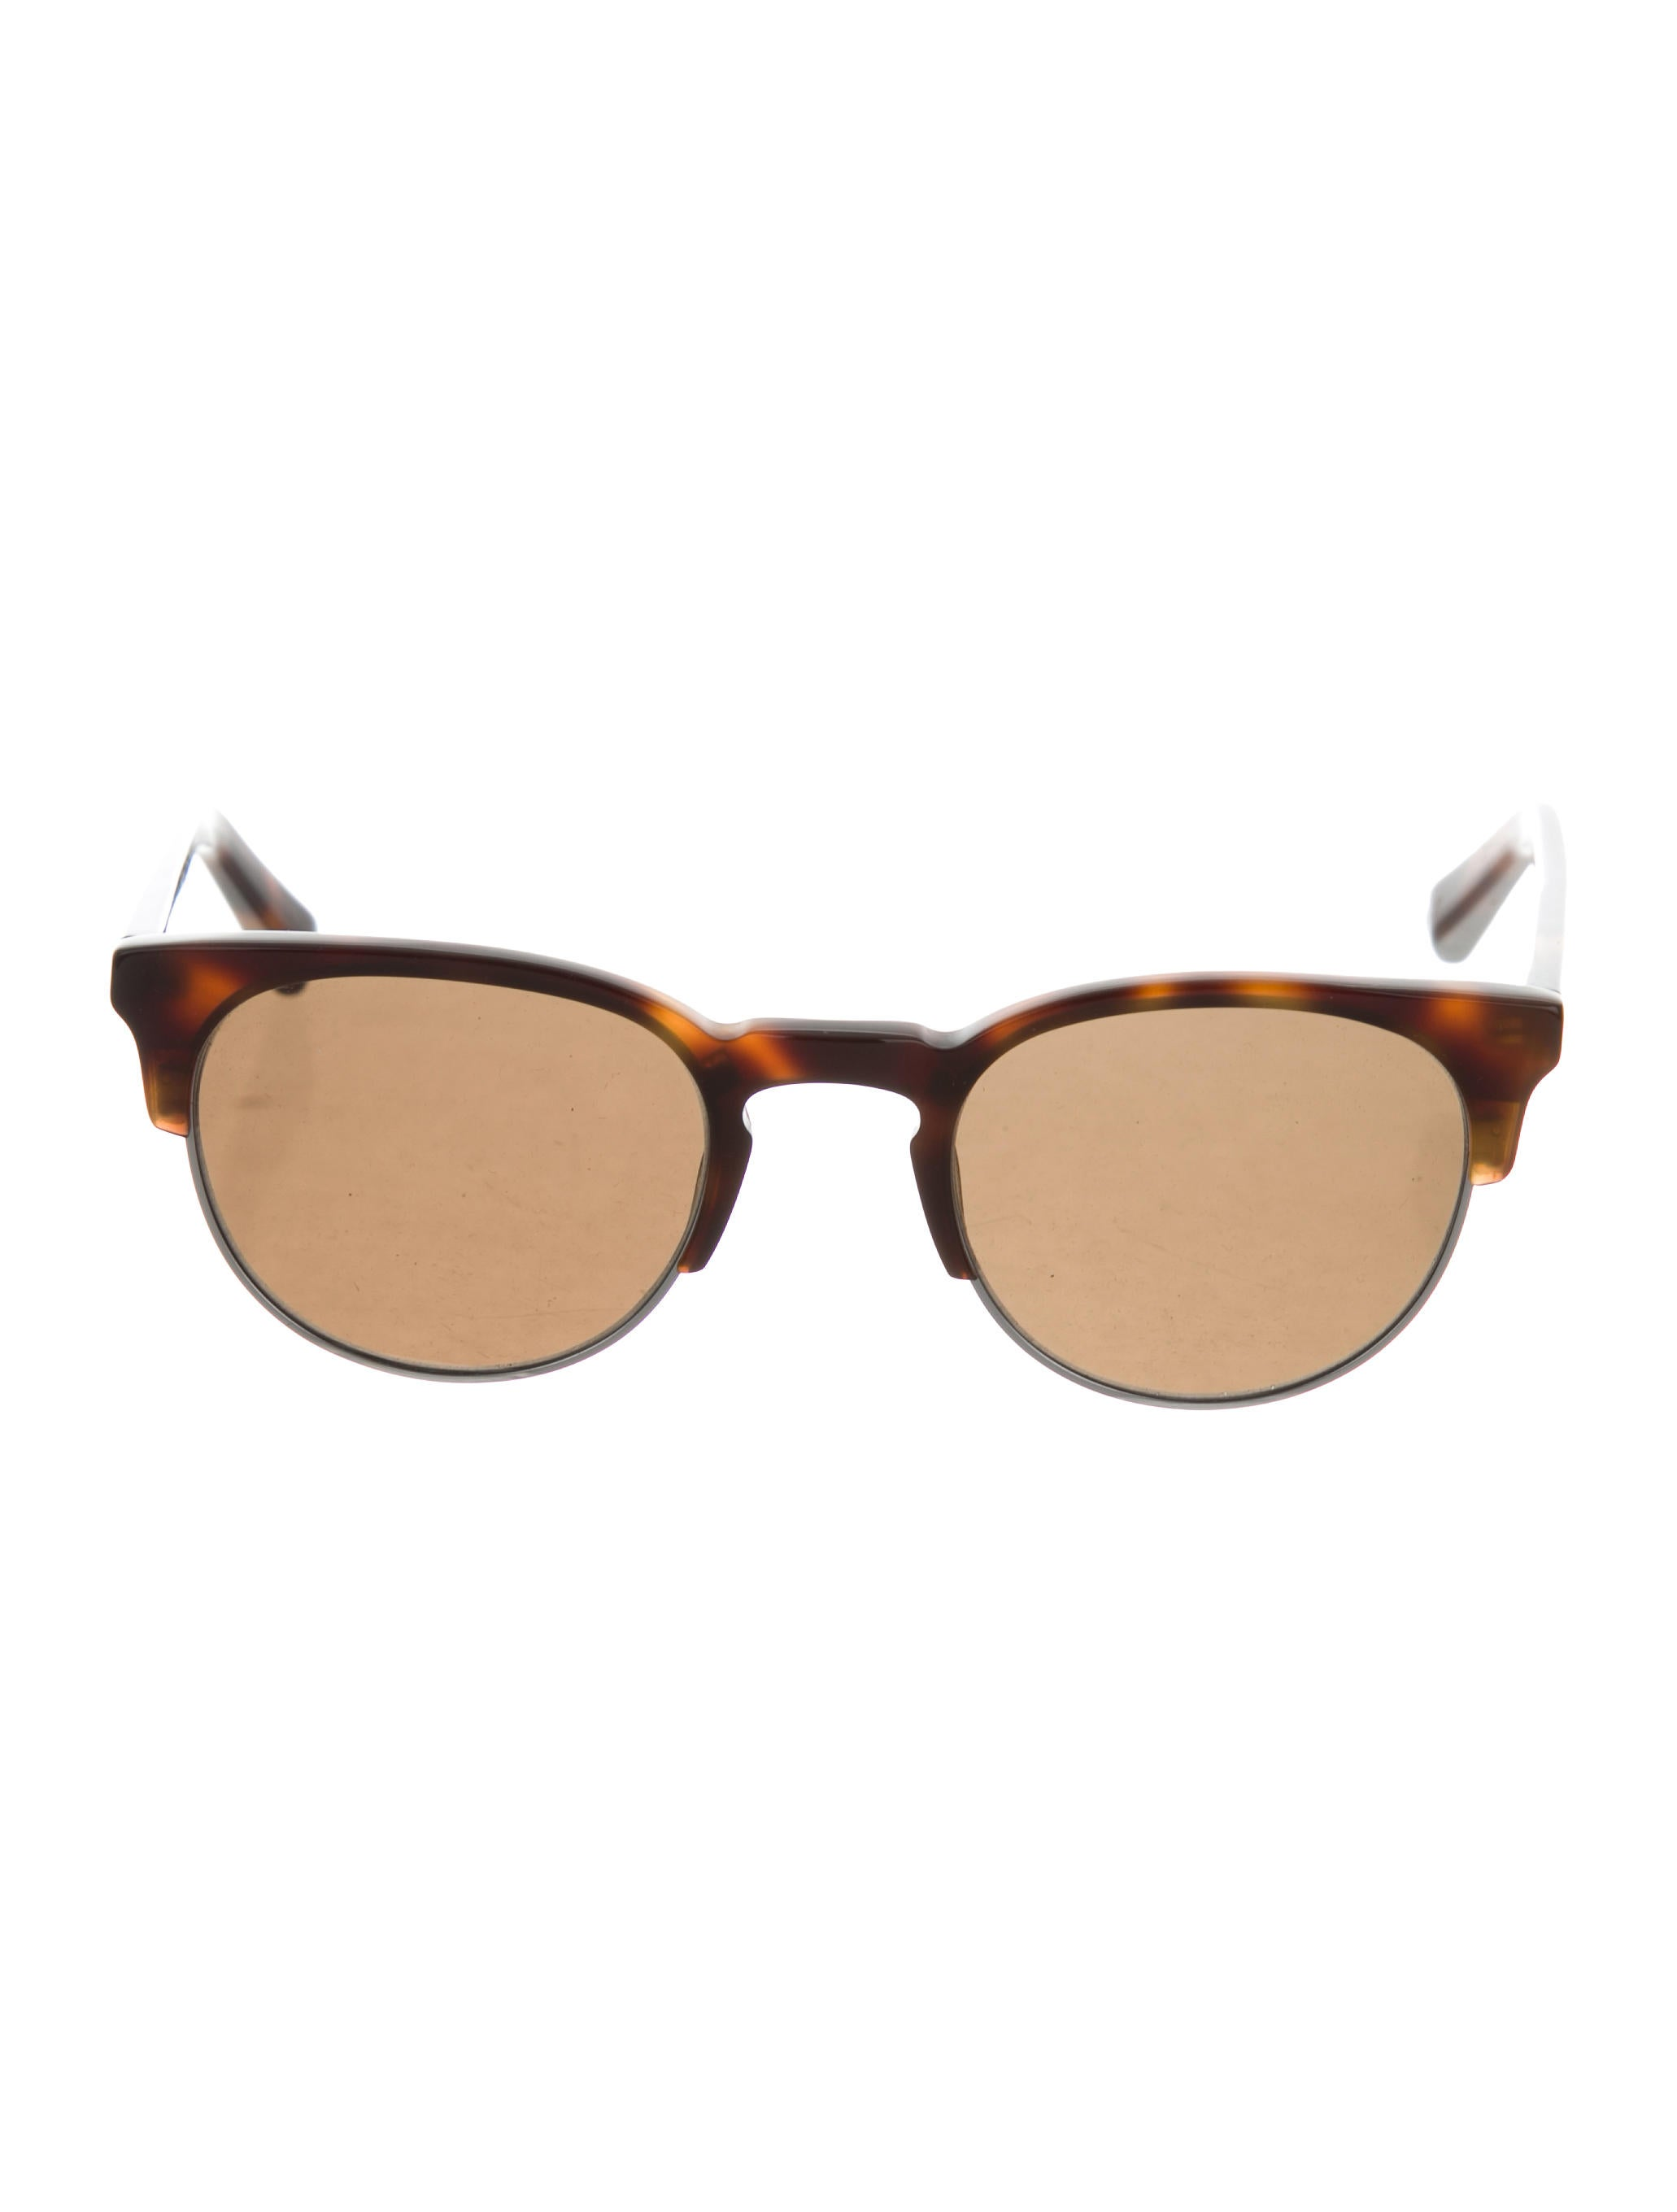 aa7ff1cdf75 Warby Parker Ripley Polarized Sunglasses - Accessories - WWAPA20031 ...